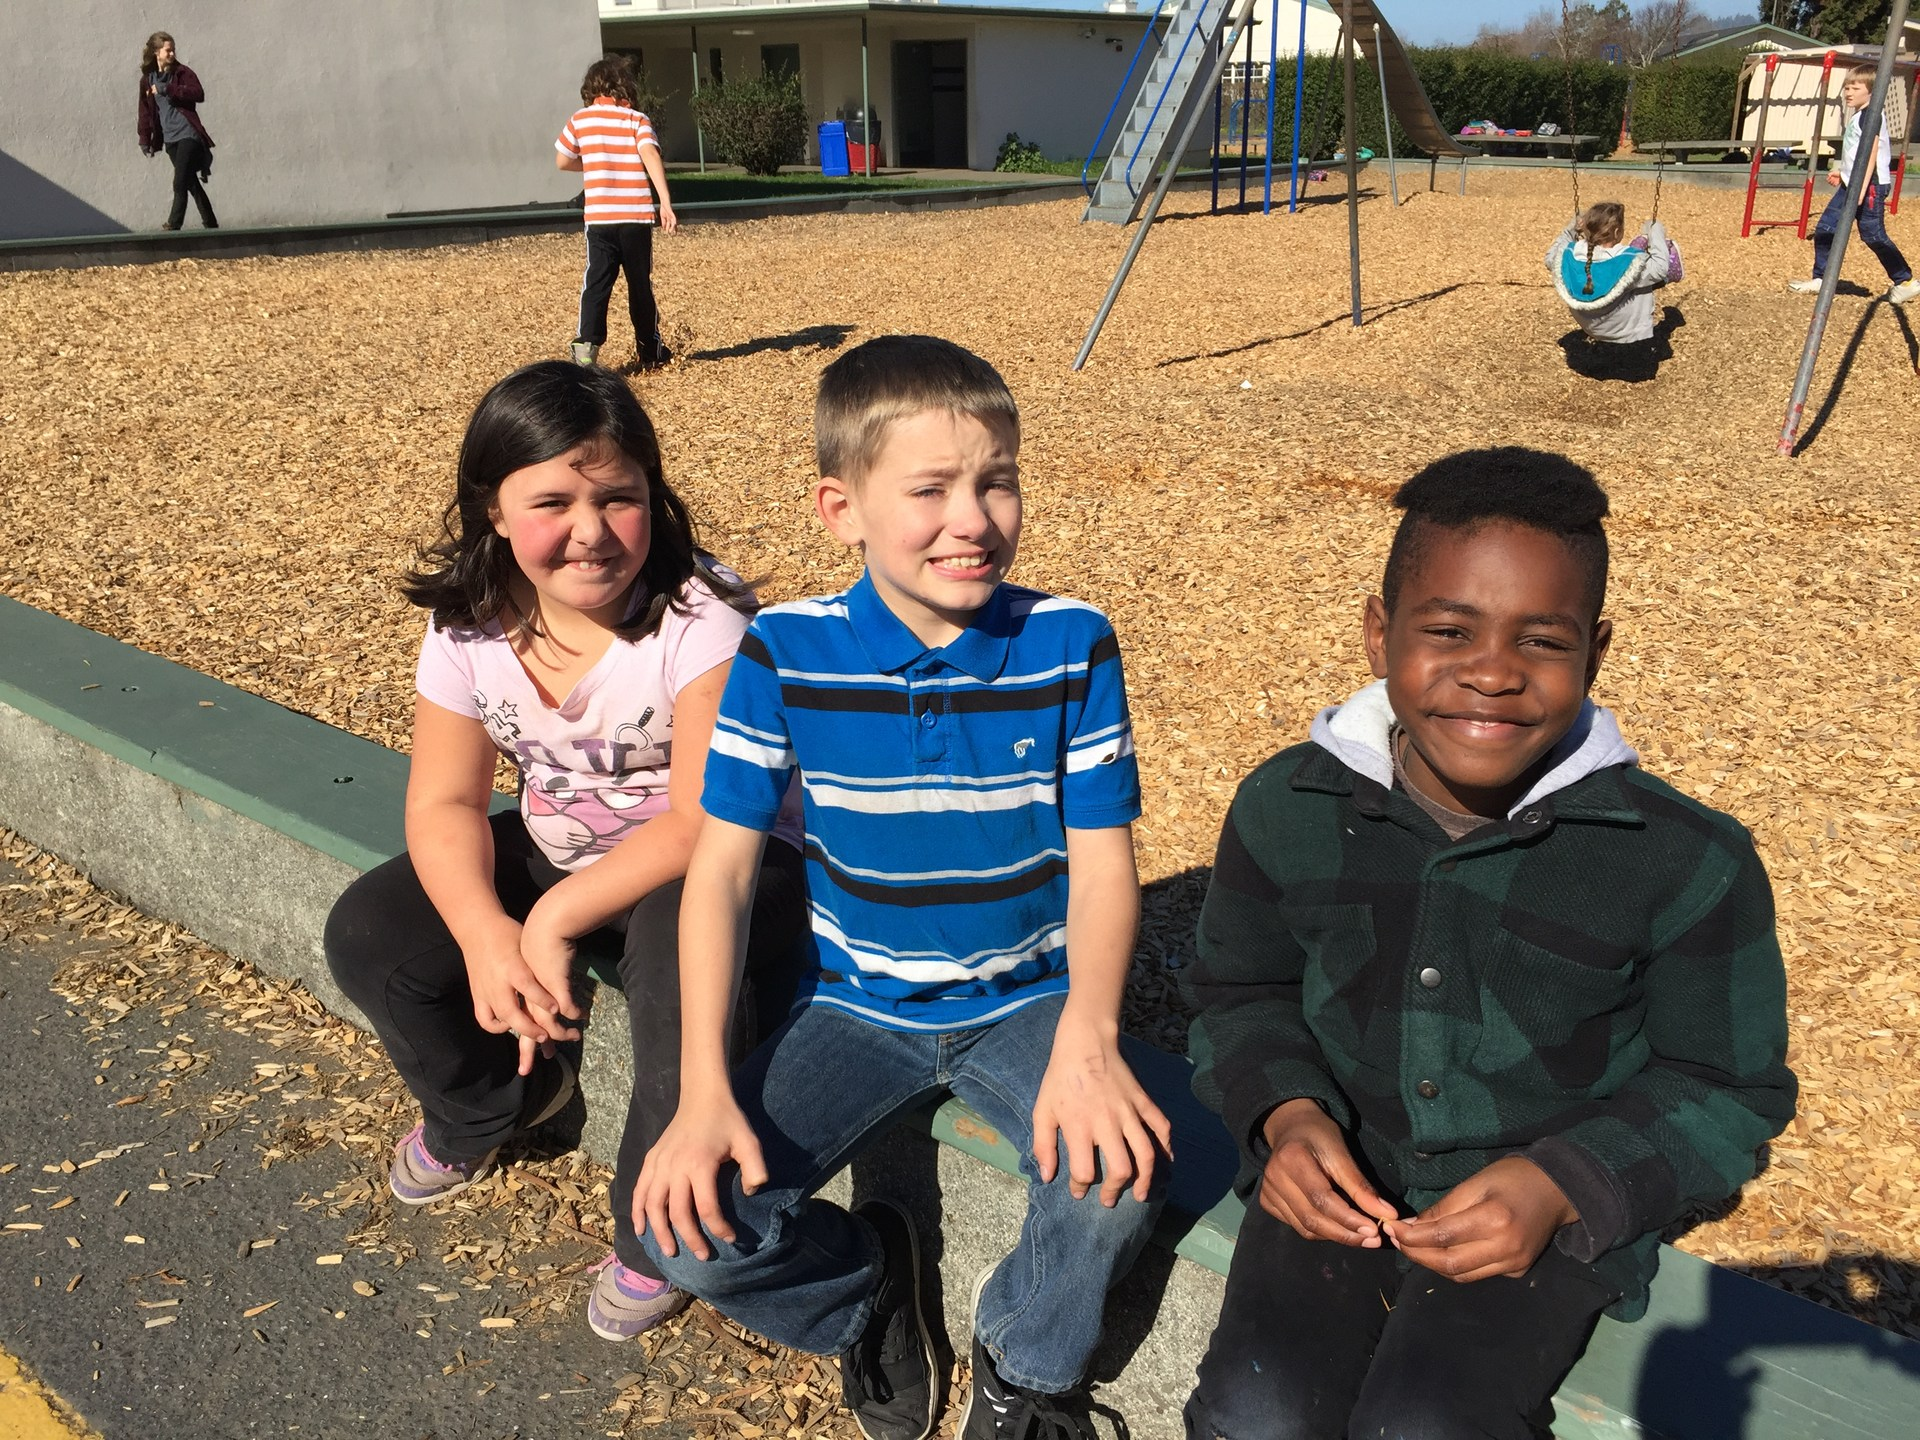 three friends at recess